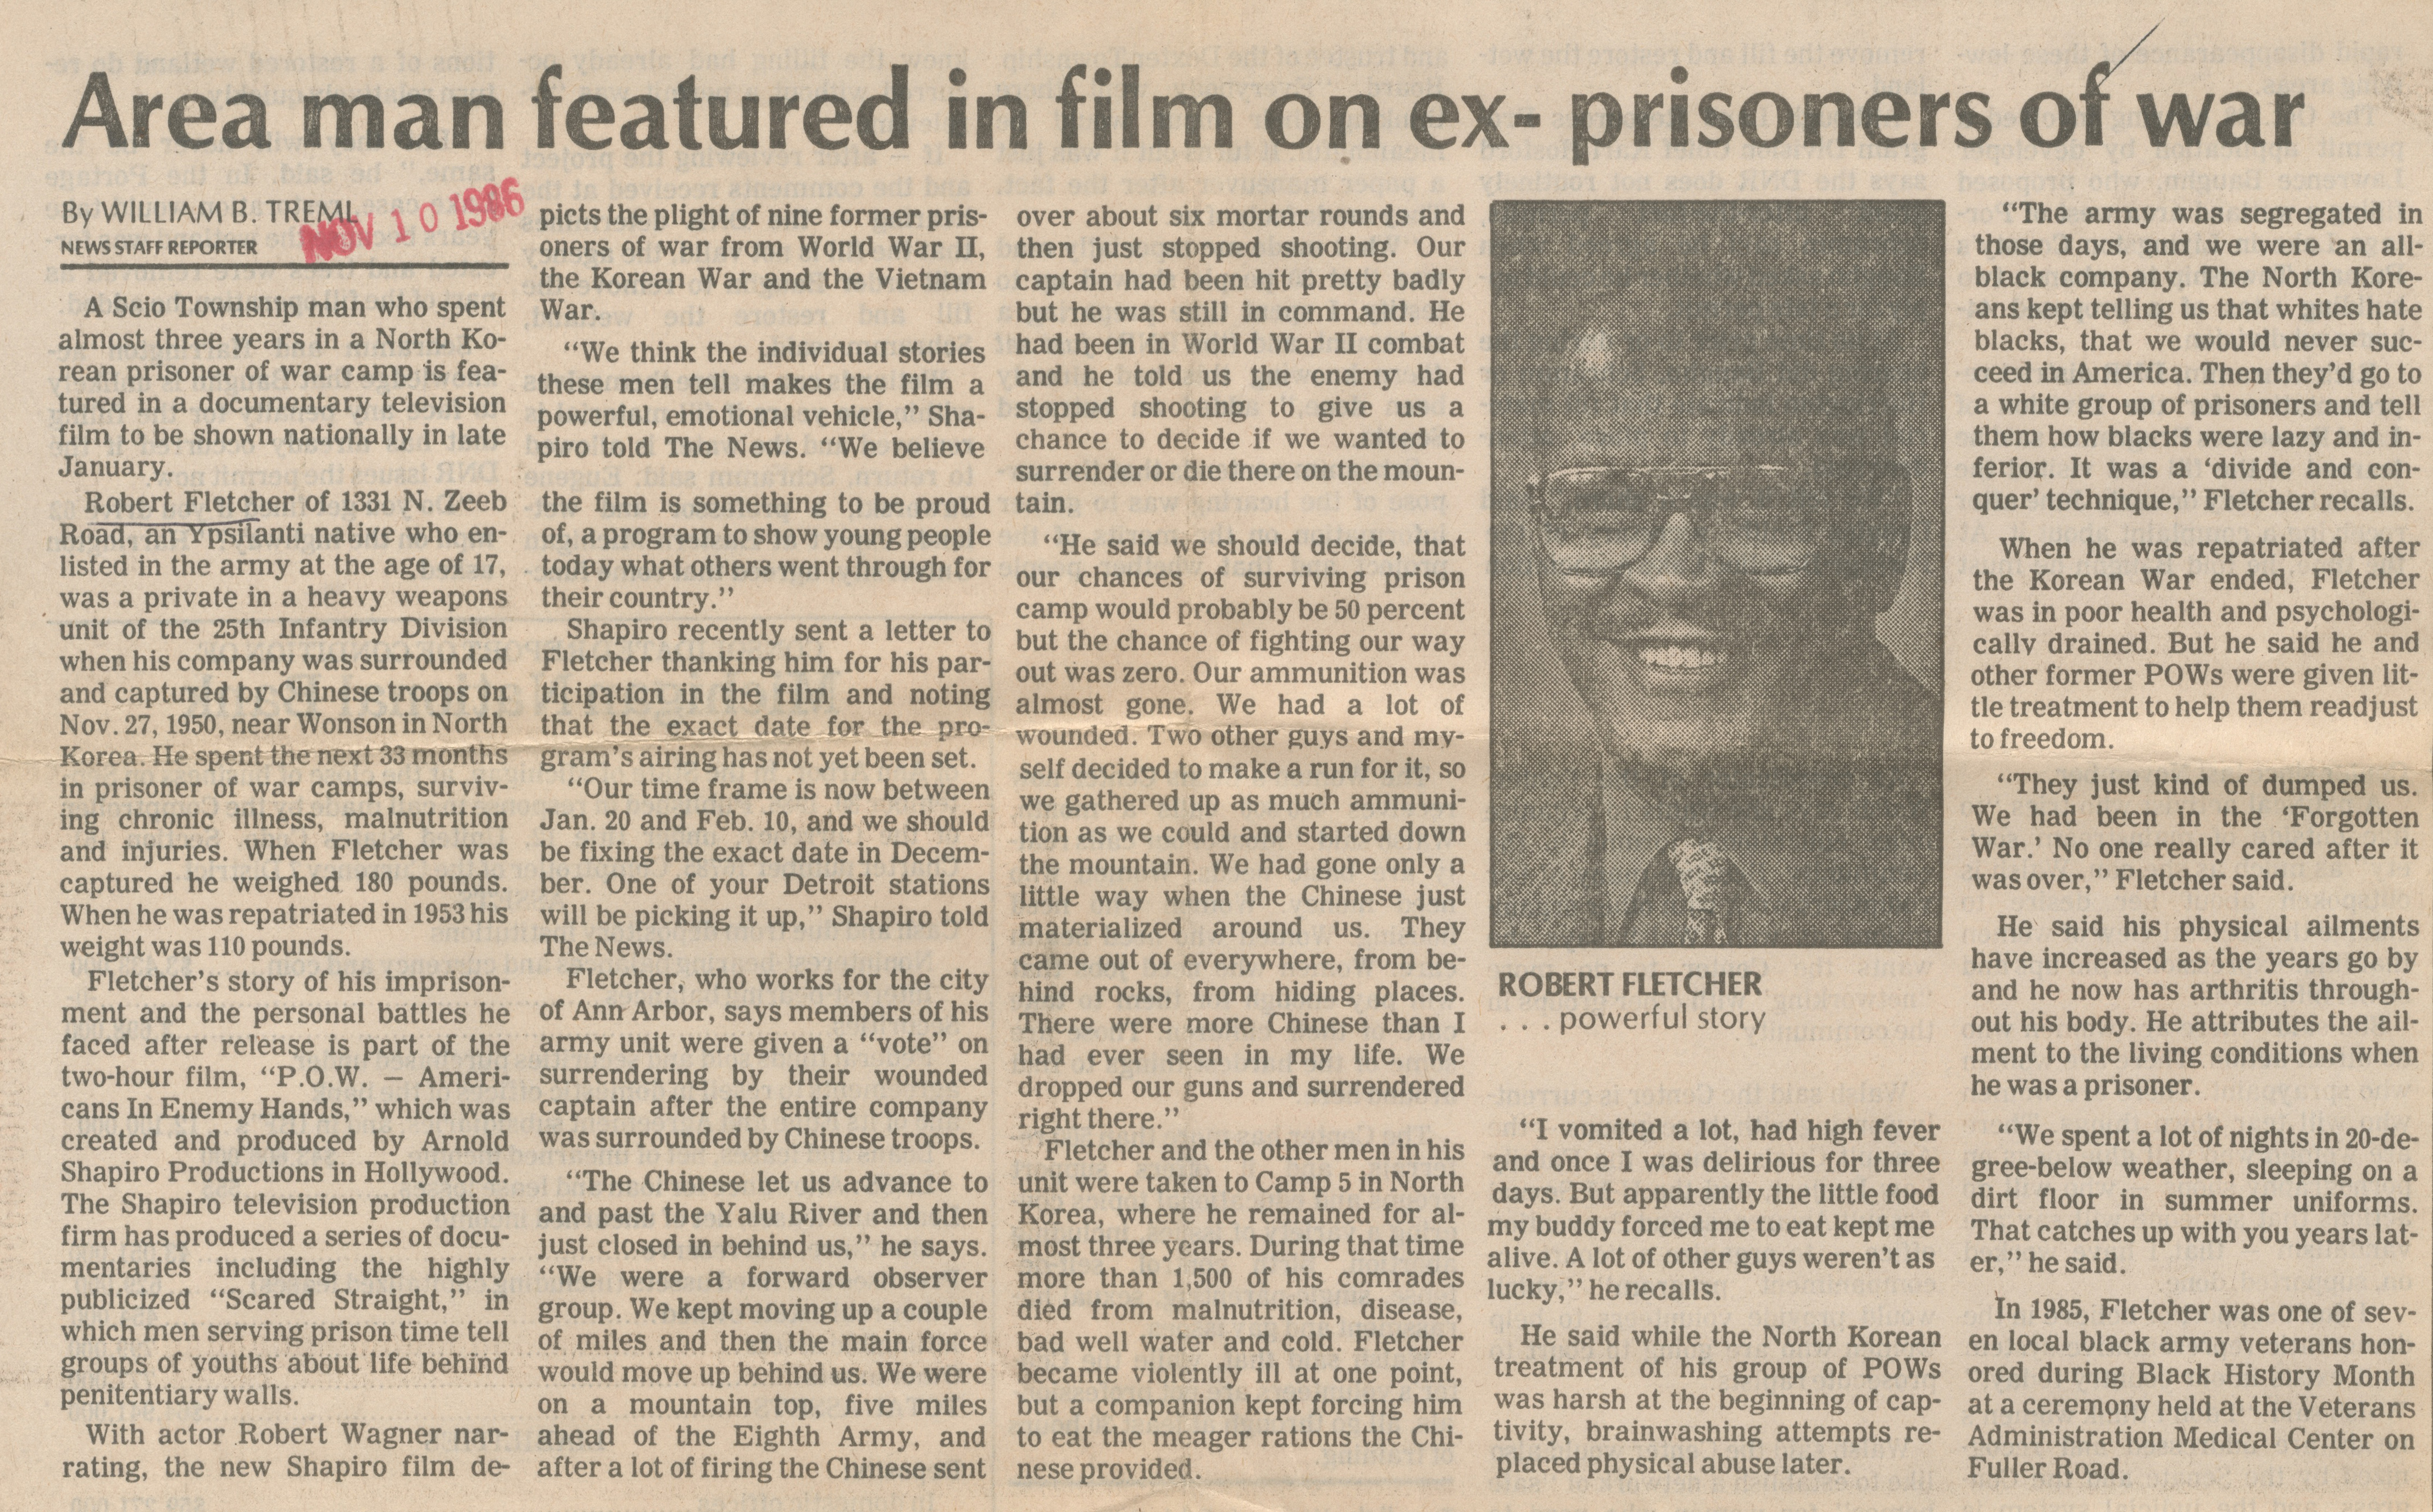 Area Man Featured in Film on Ex-Prisoners of War image